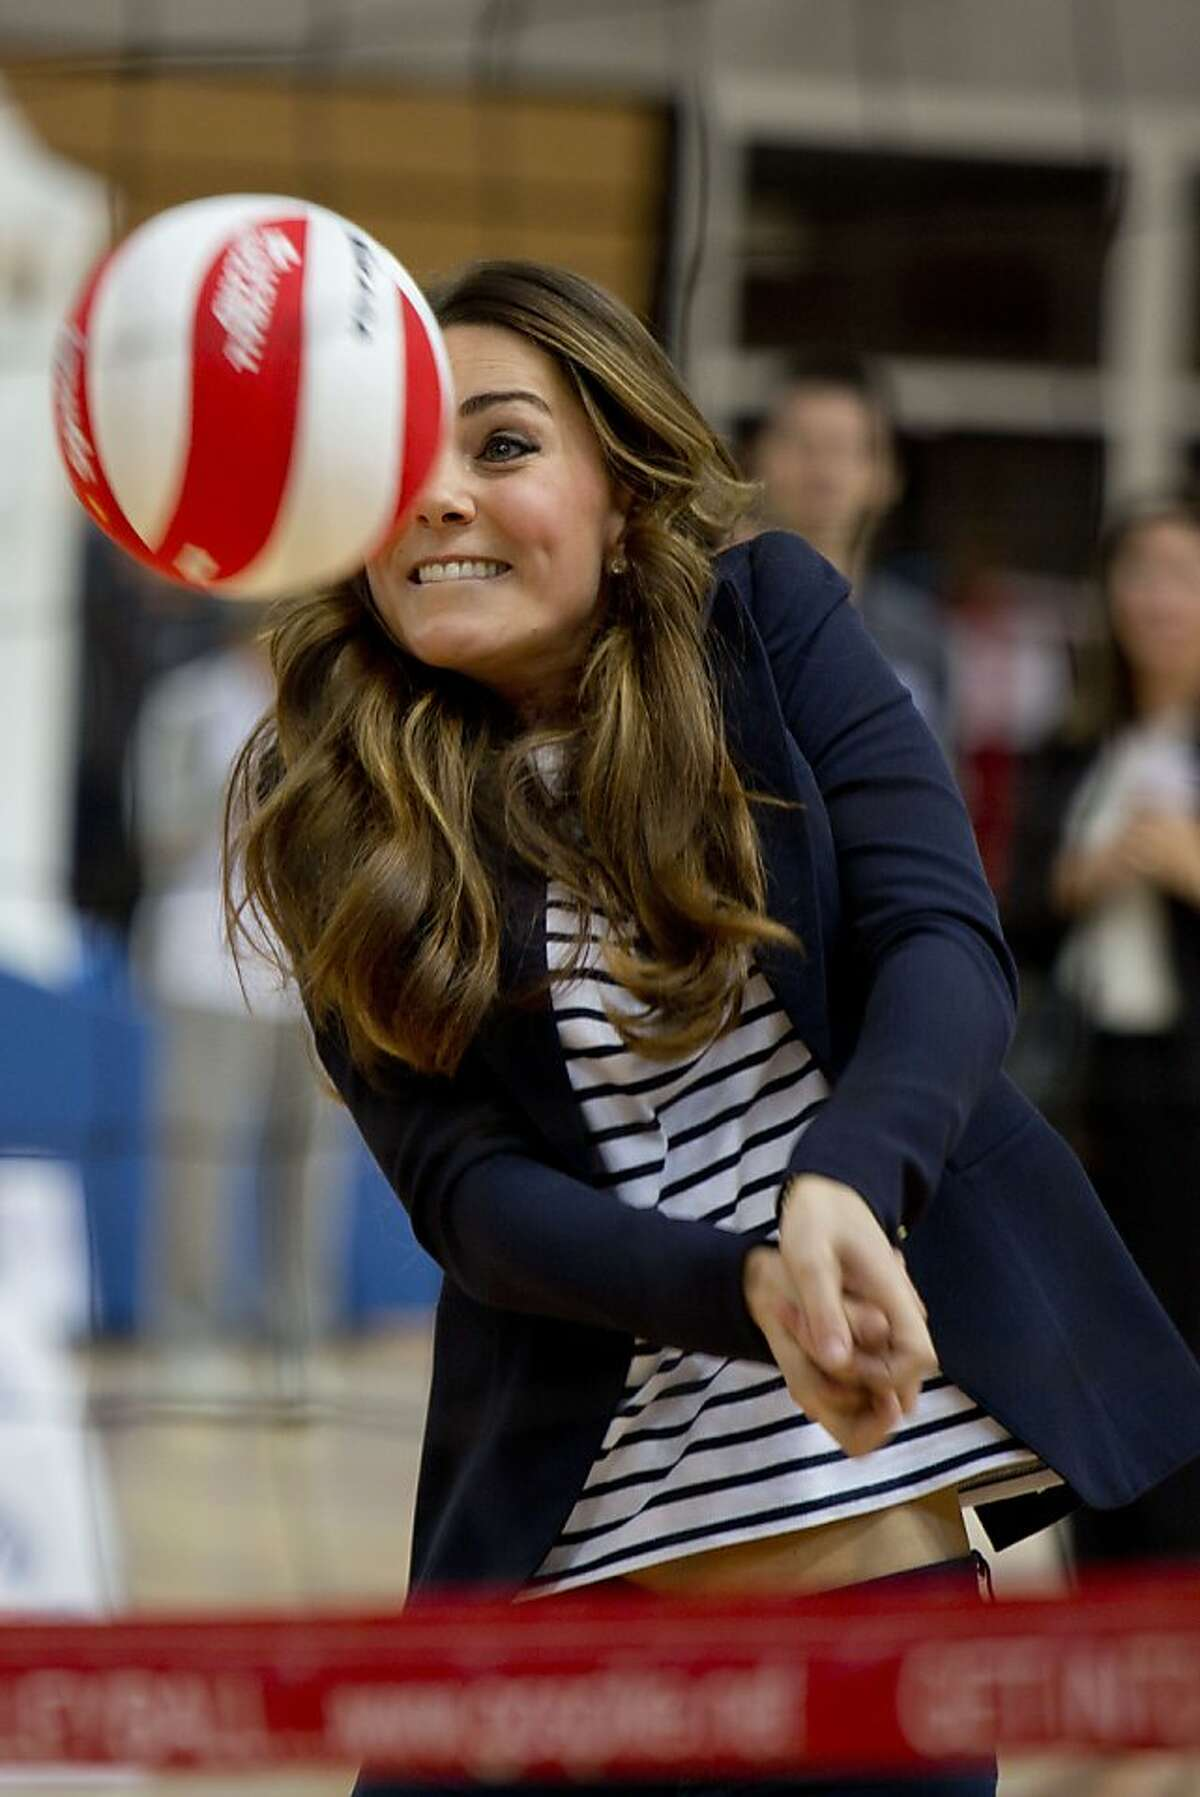 Forearm bump : Kate sets the ball for a teammate's spike during a volleyball match at the SportsAid Athlete Workshop at Queen Elizabeth Olympic Park in London.